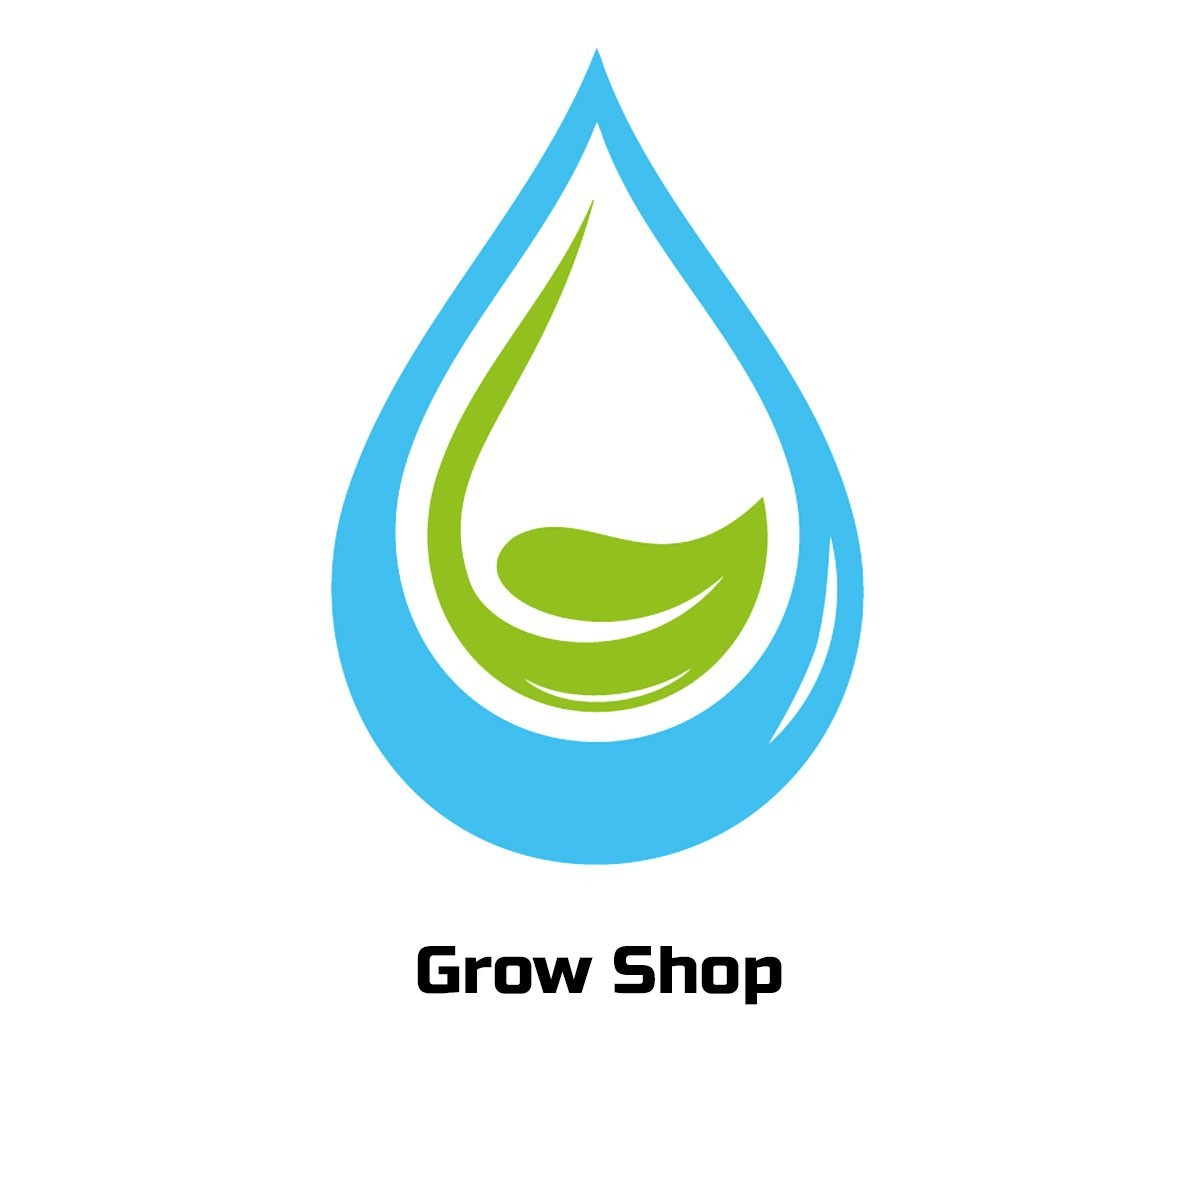 tiendagrowshop.com Grow Shop